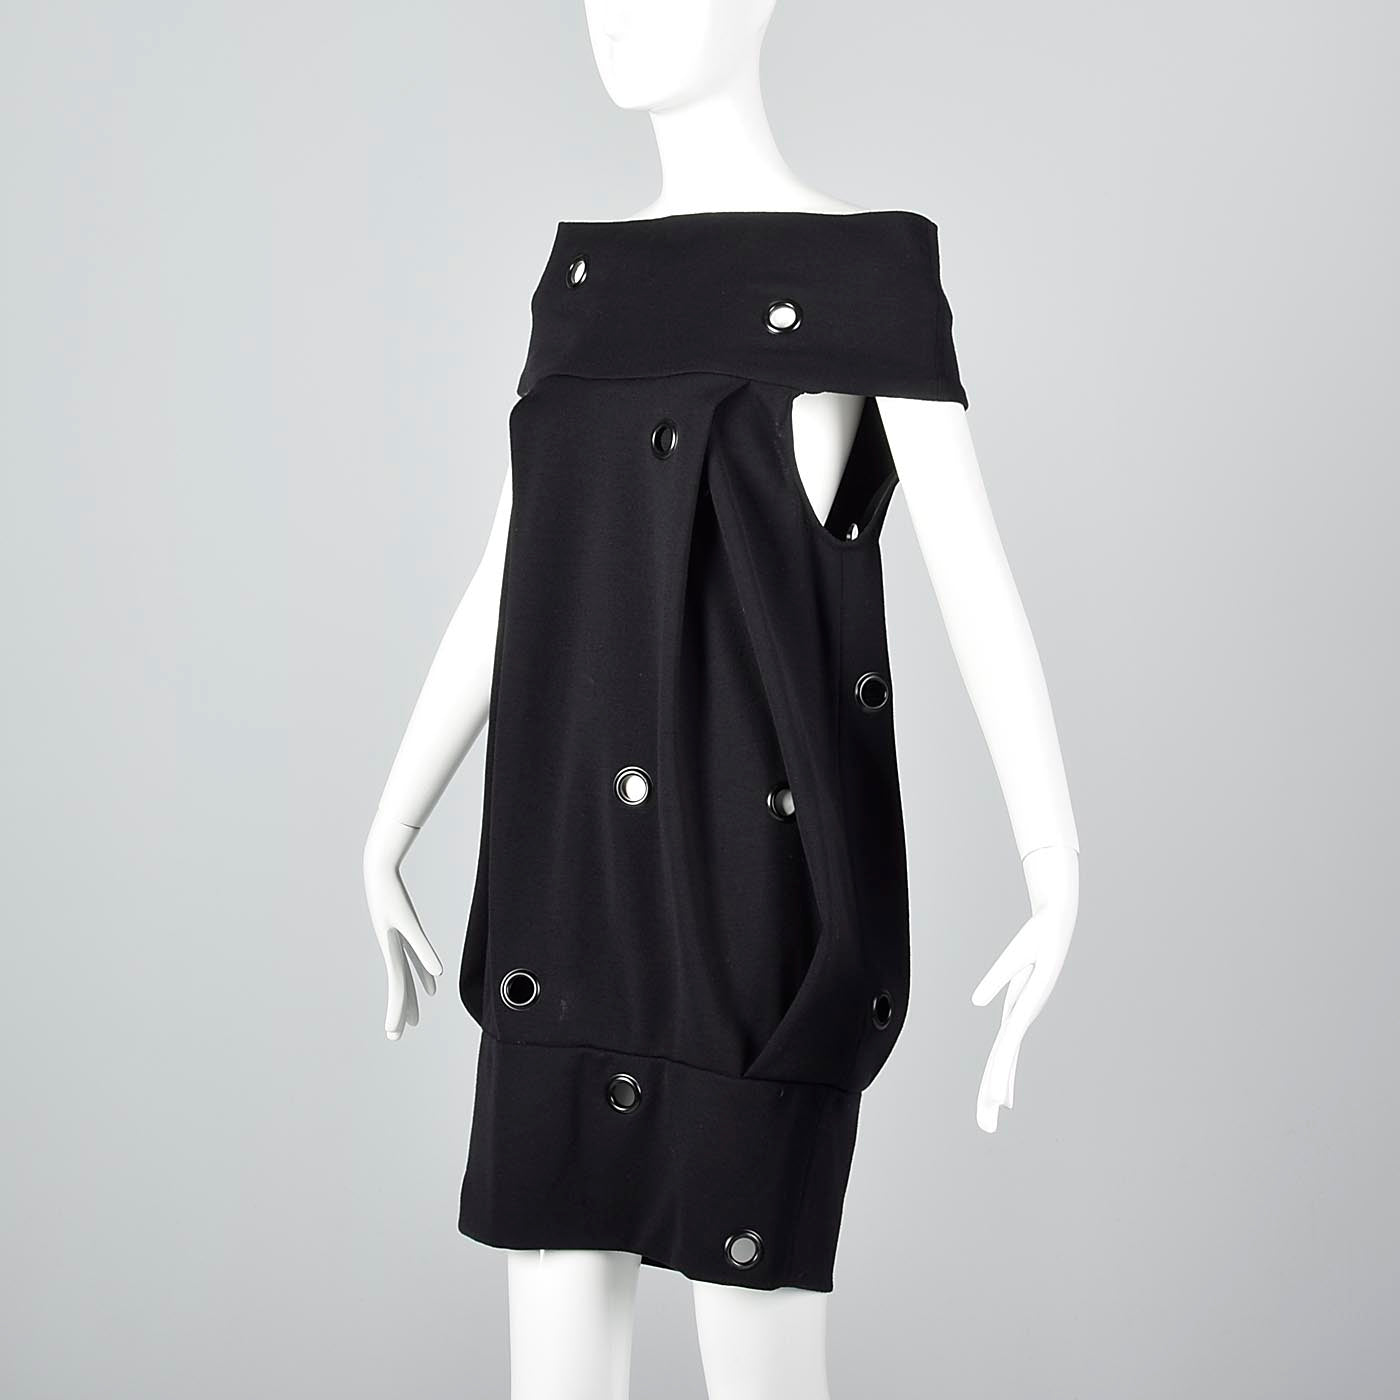 Avant Garde 1980s Gianfranco Ferre Off Shoulder Bubble Dress with Metal Grommets